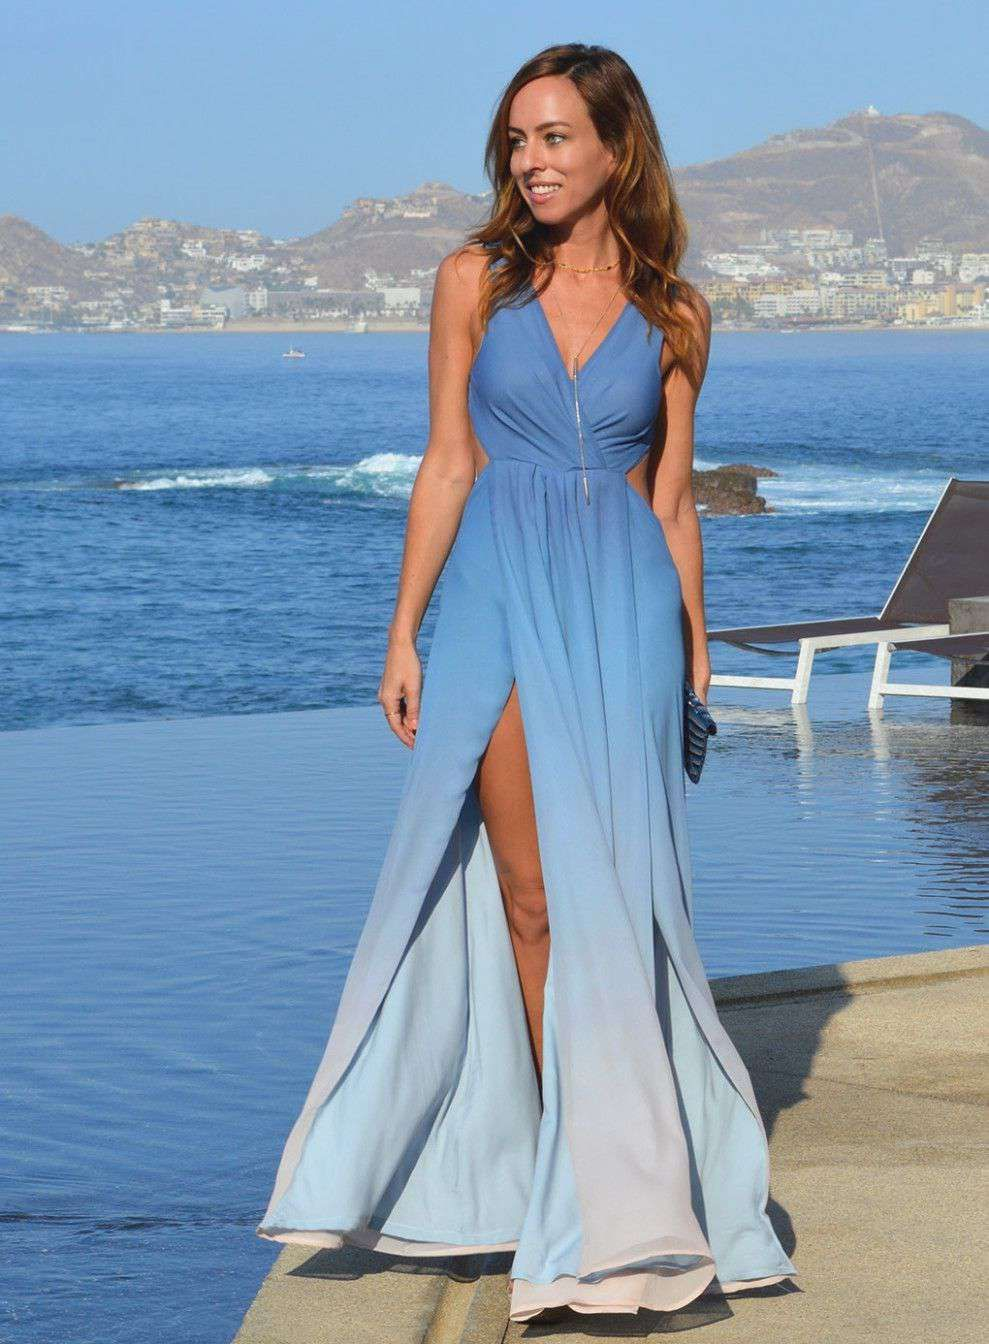 Blue Ocean Beach Wedding Guest Dresses Beach Wedding Guest Attire Wedding Guest Dress Summer Beach Wedding Outfit Guest